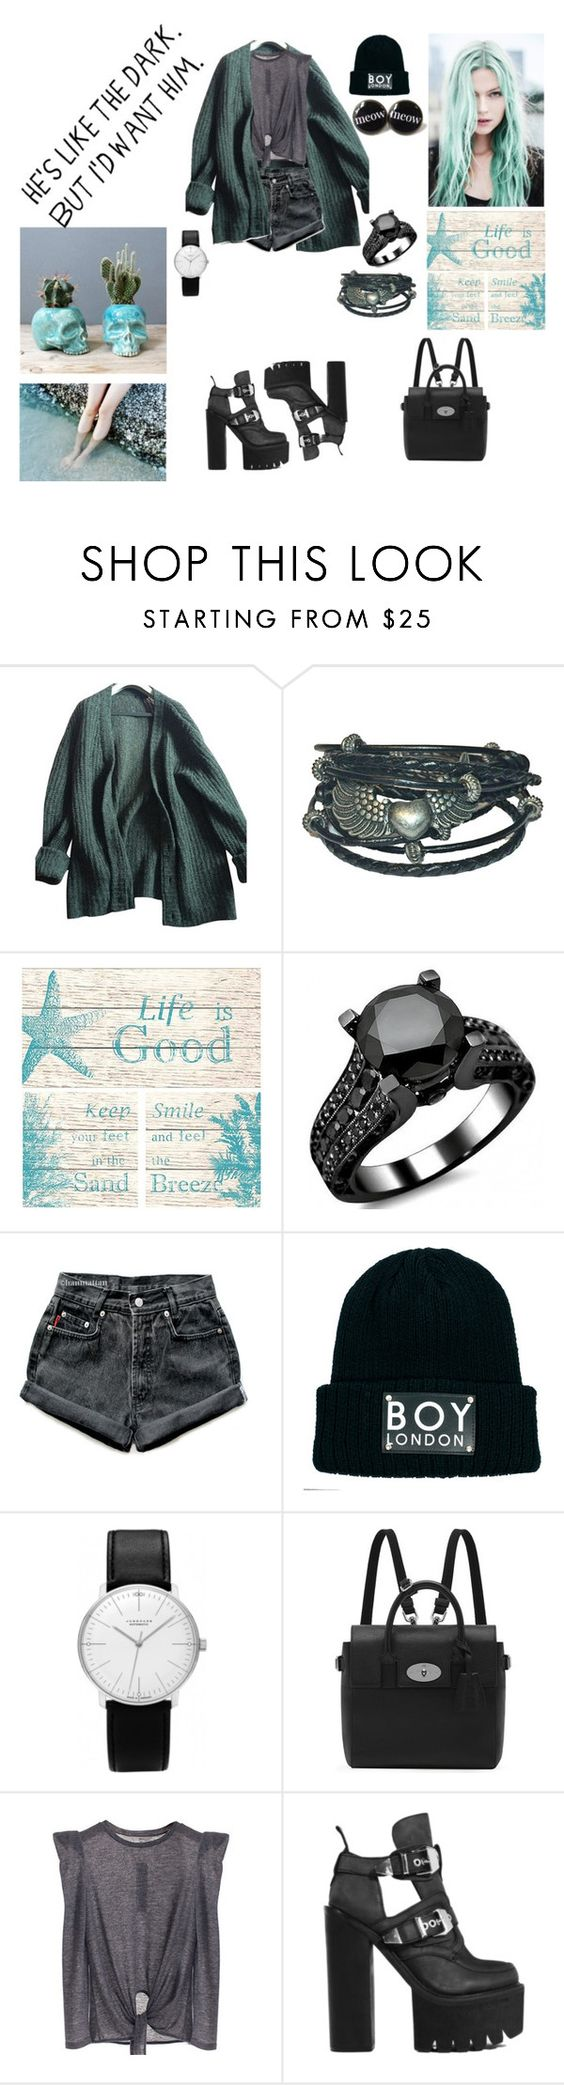 """""""he's the dark"""" by akemi-kiryu ❤ liked on Polyvore featuring Prada, Universal Lighting and Decor, Levi's, BOY London, Junghans, Mulberry, Jeffrey Campbell and bedroom"""